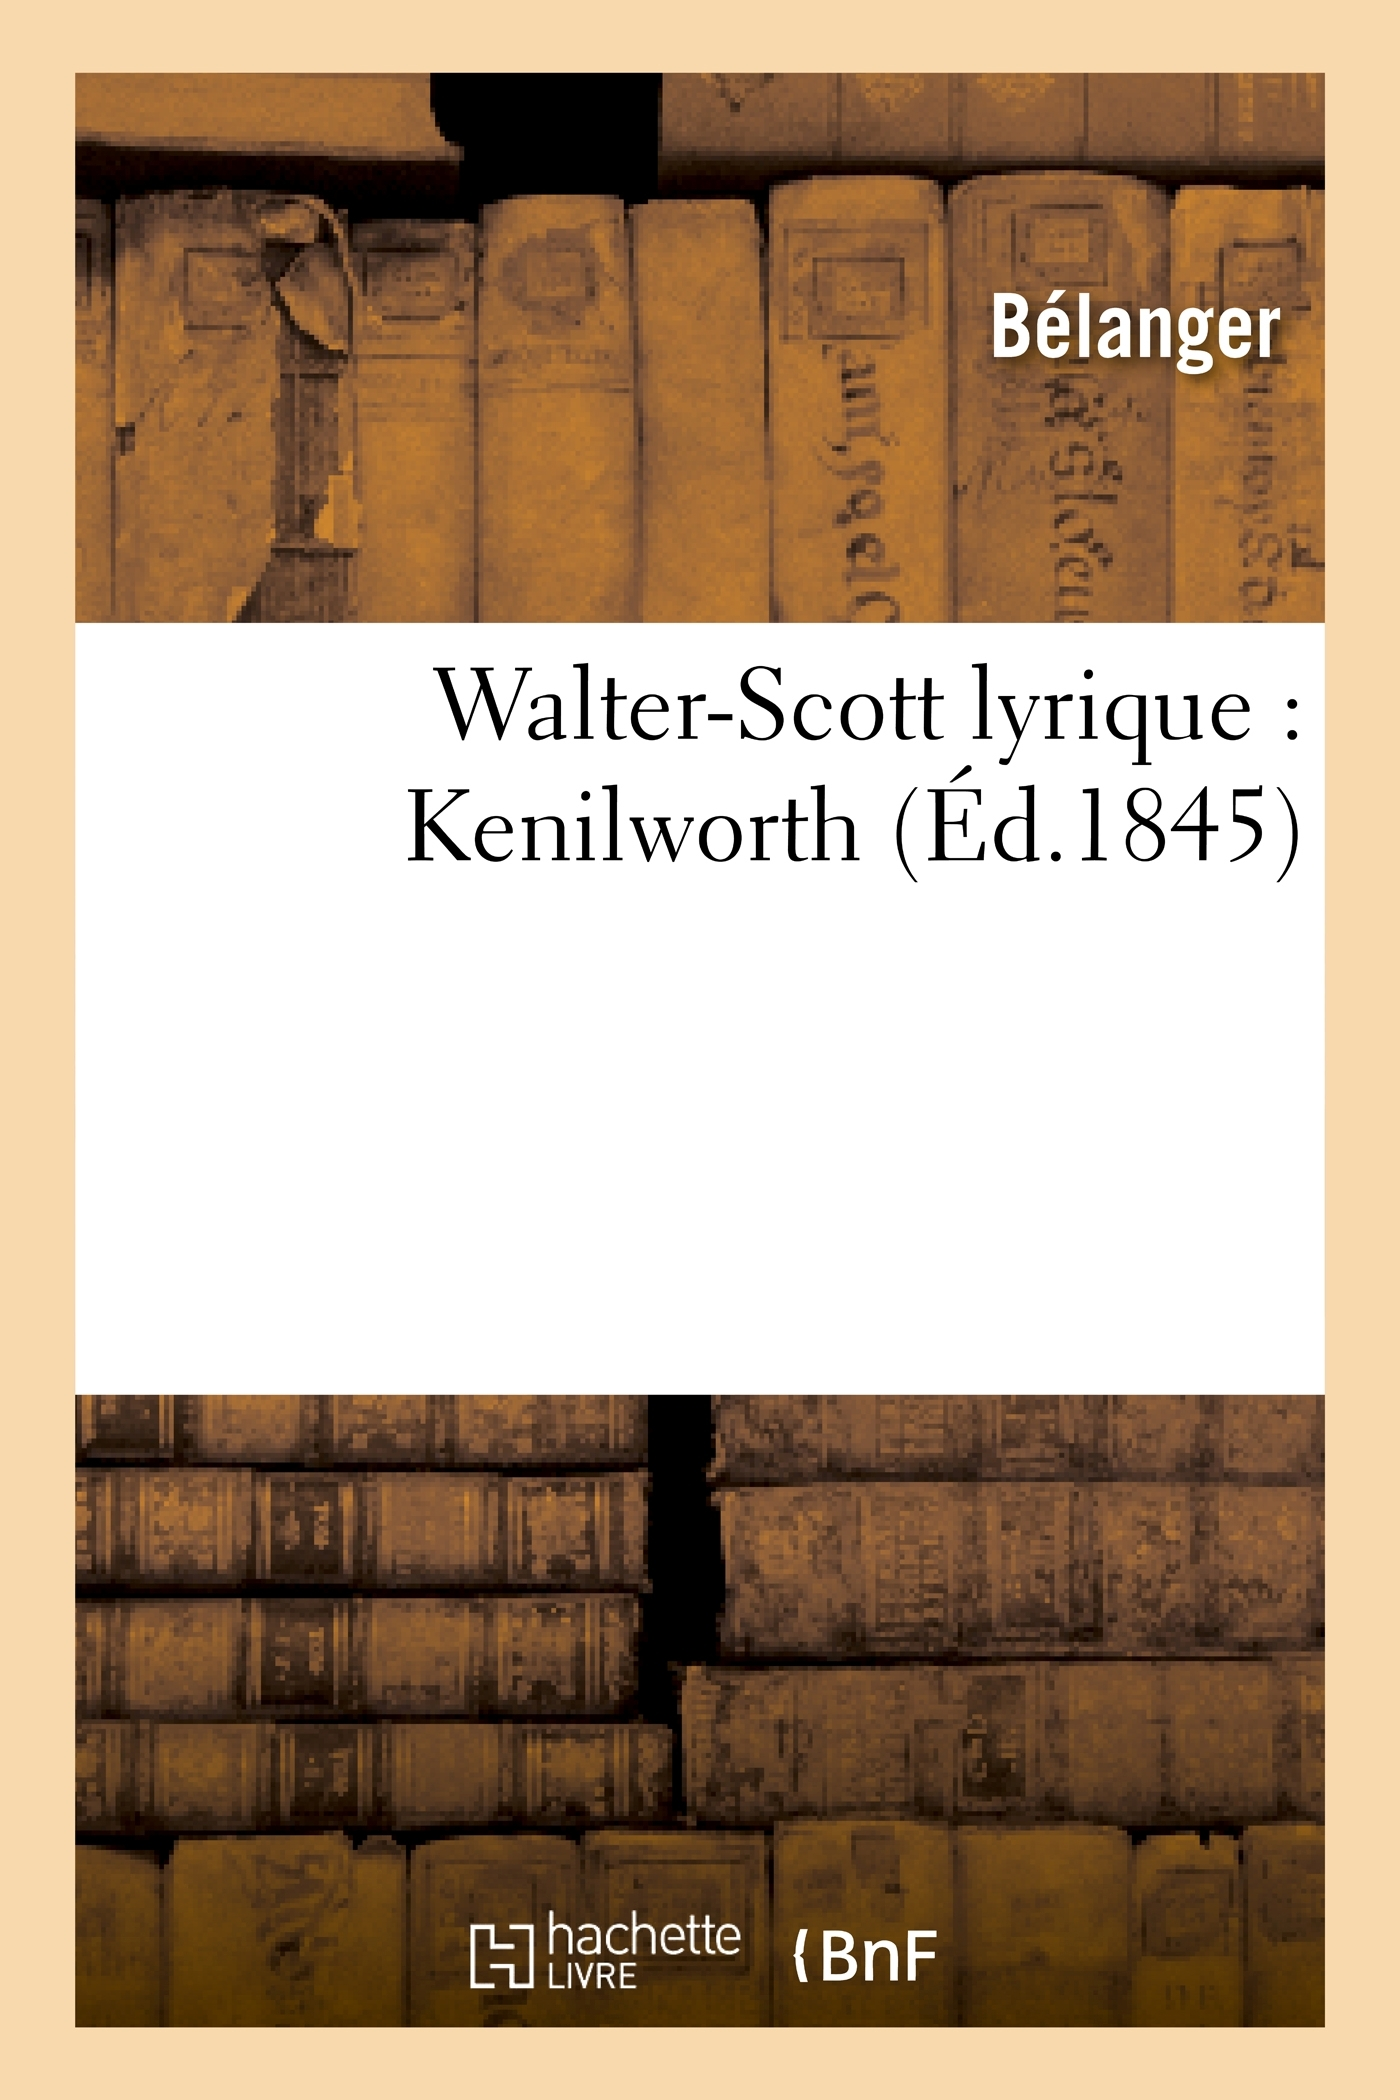 WALTER-SCOTT LYRIQUE : KENILWORTH